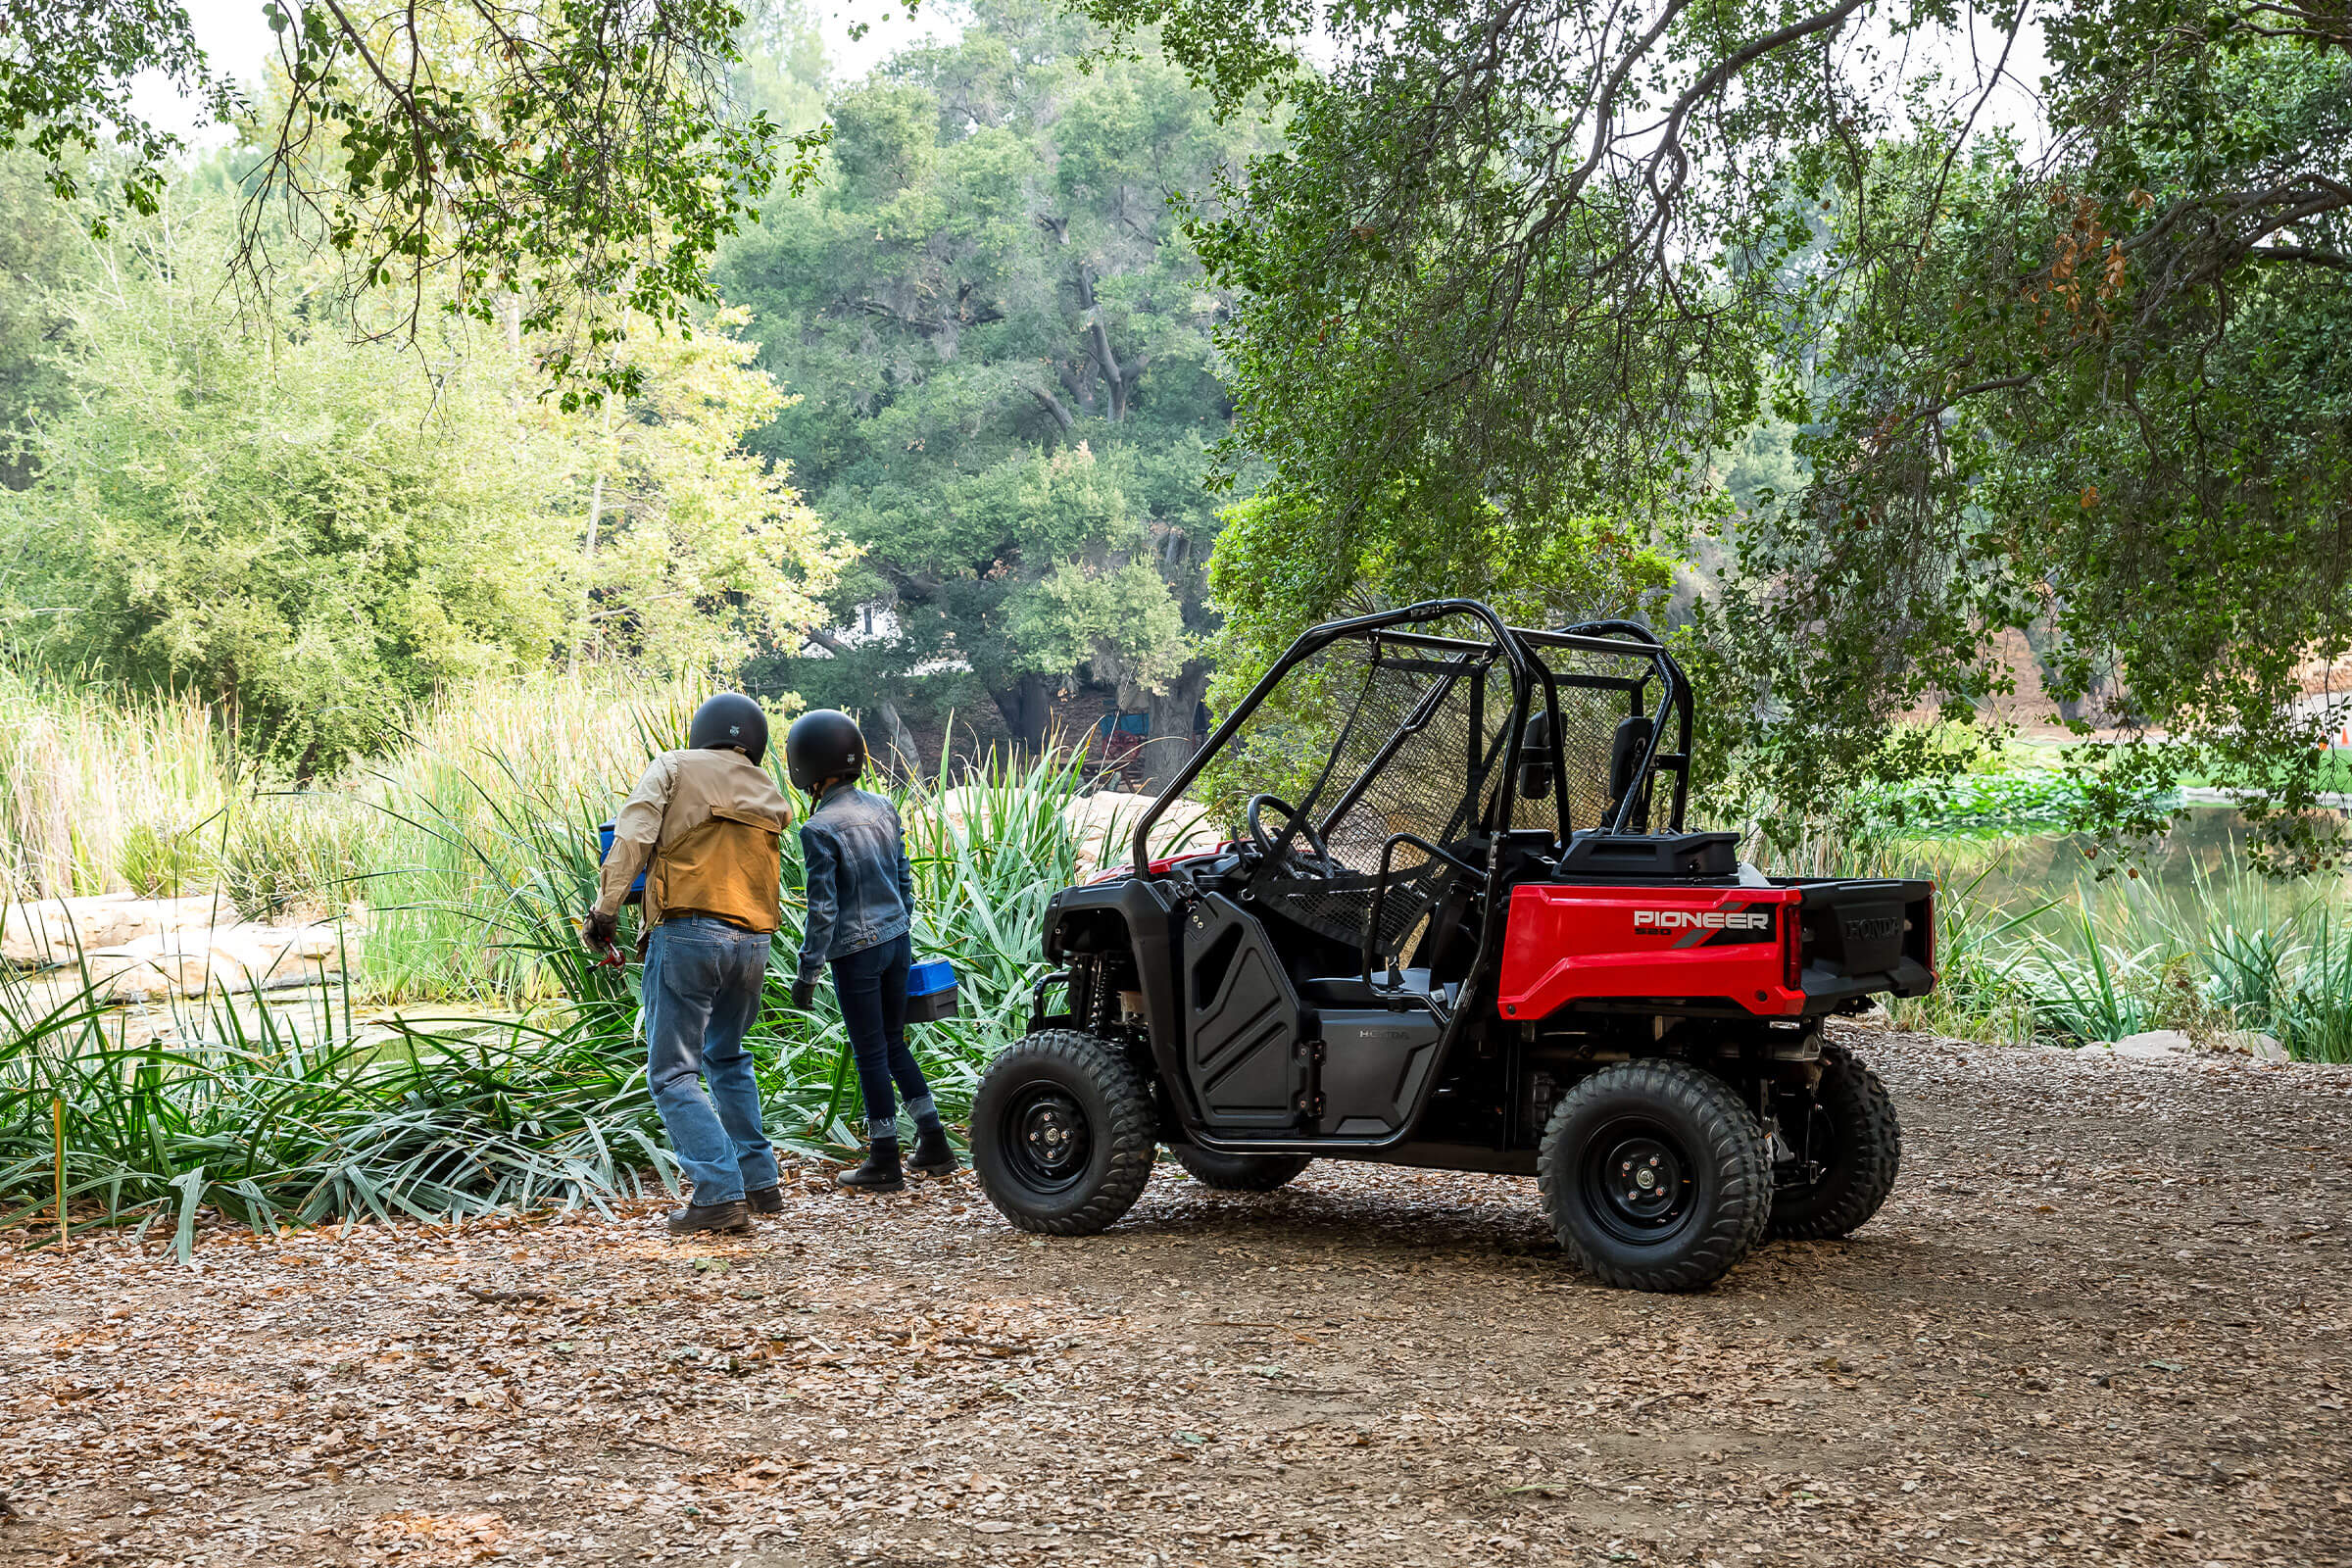 2021 Honda Pioneer 520 in Rice Lake, Wisconsin - Photo 2